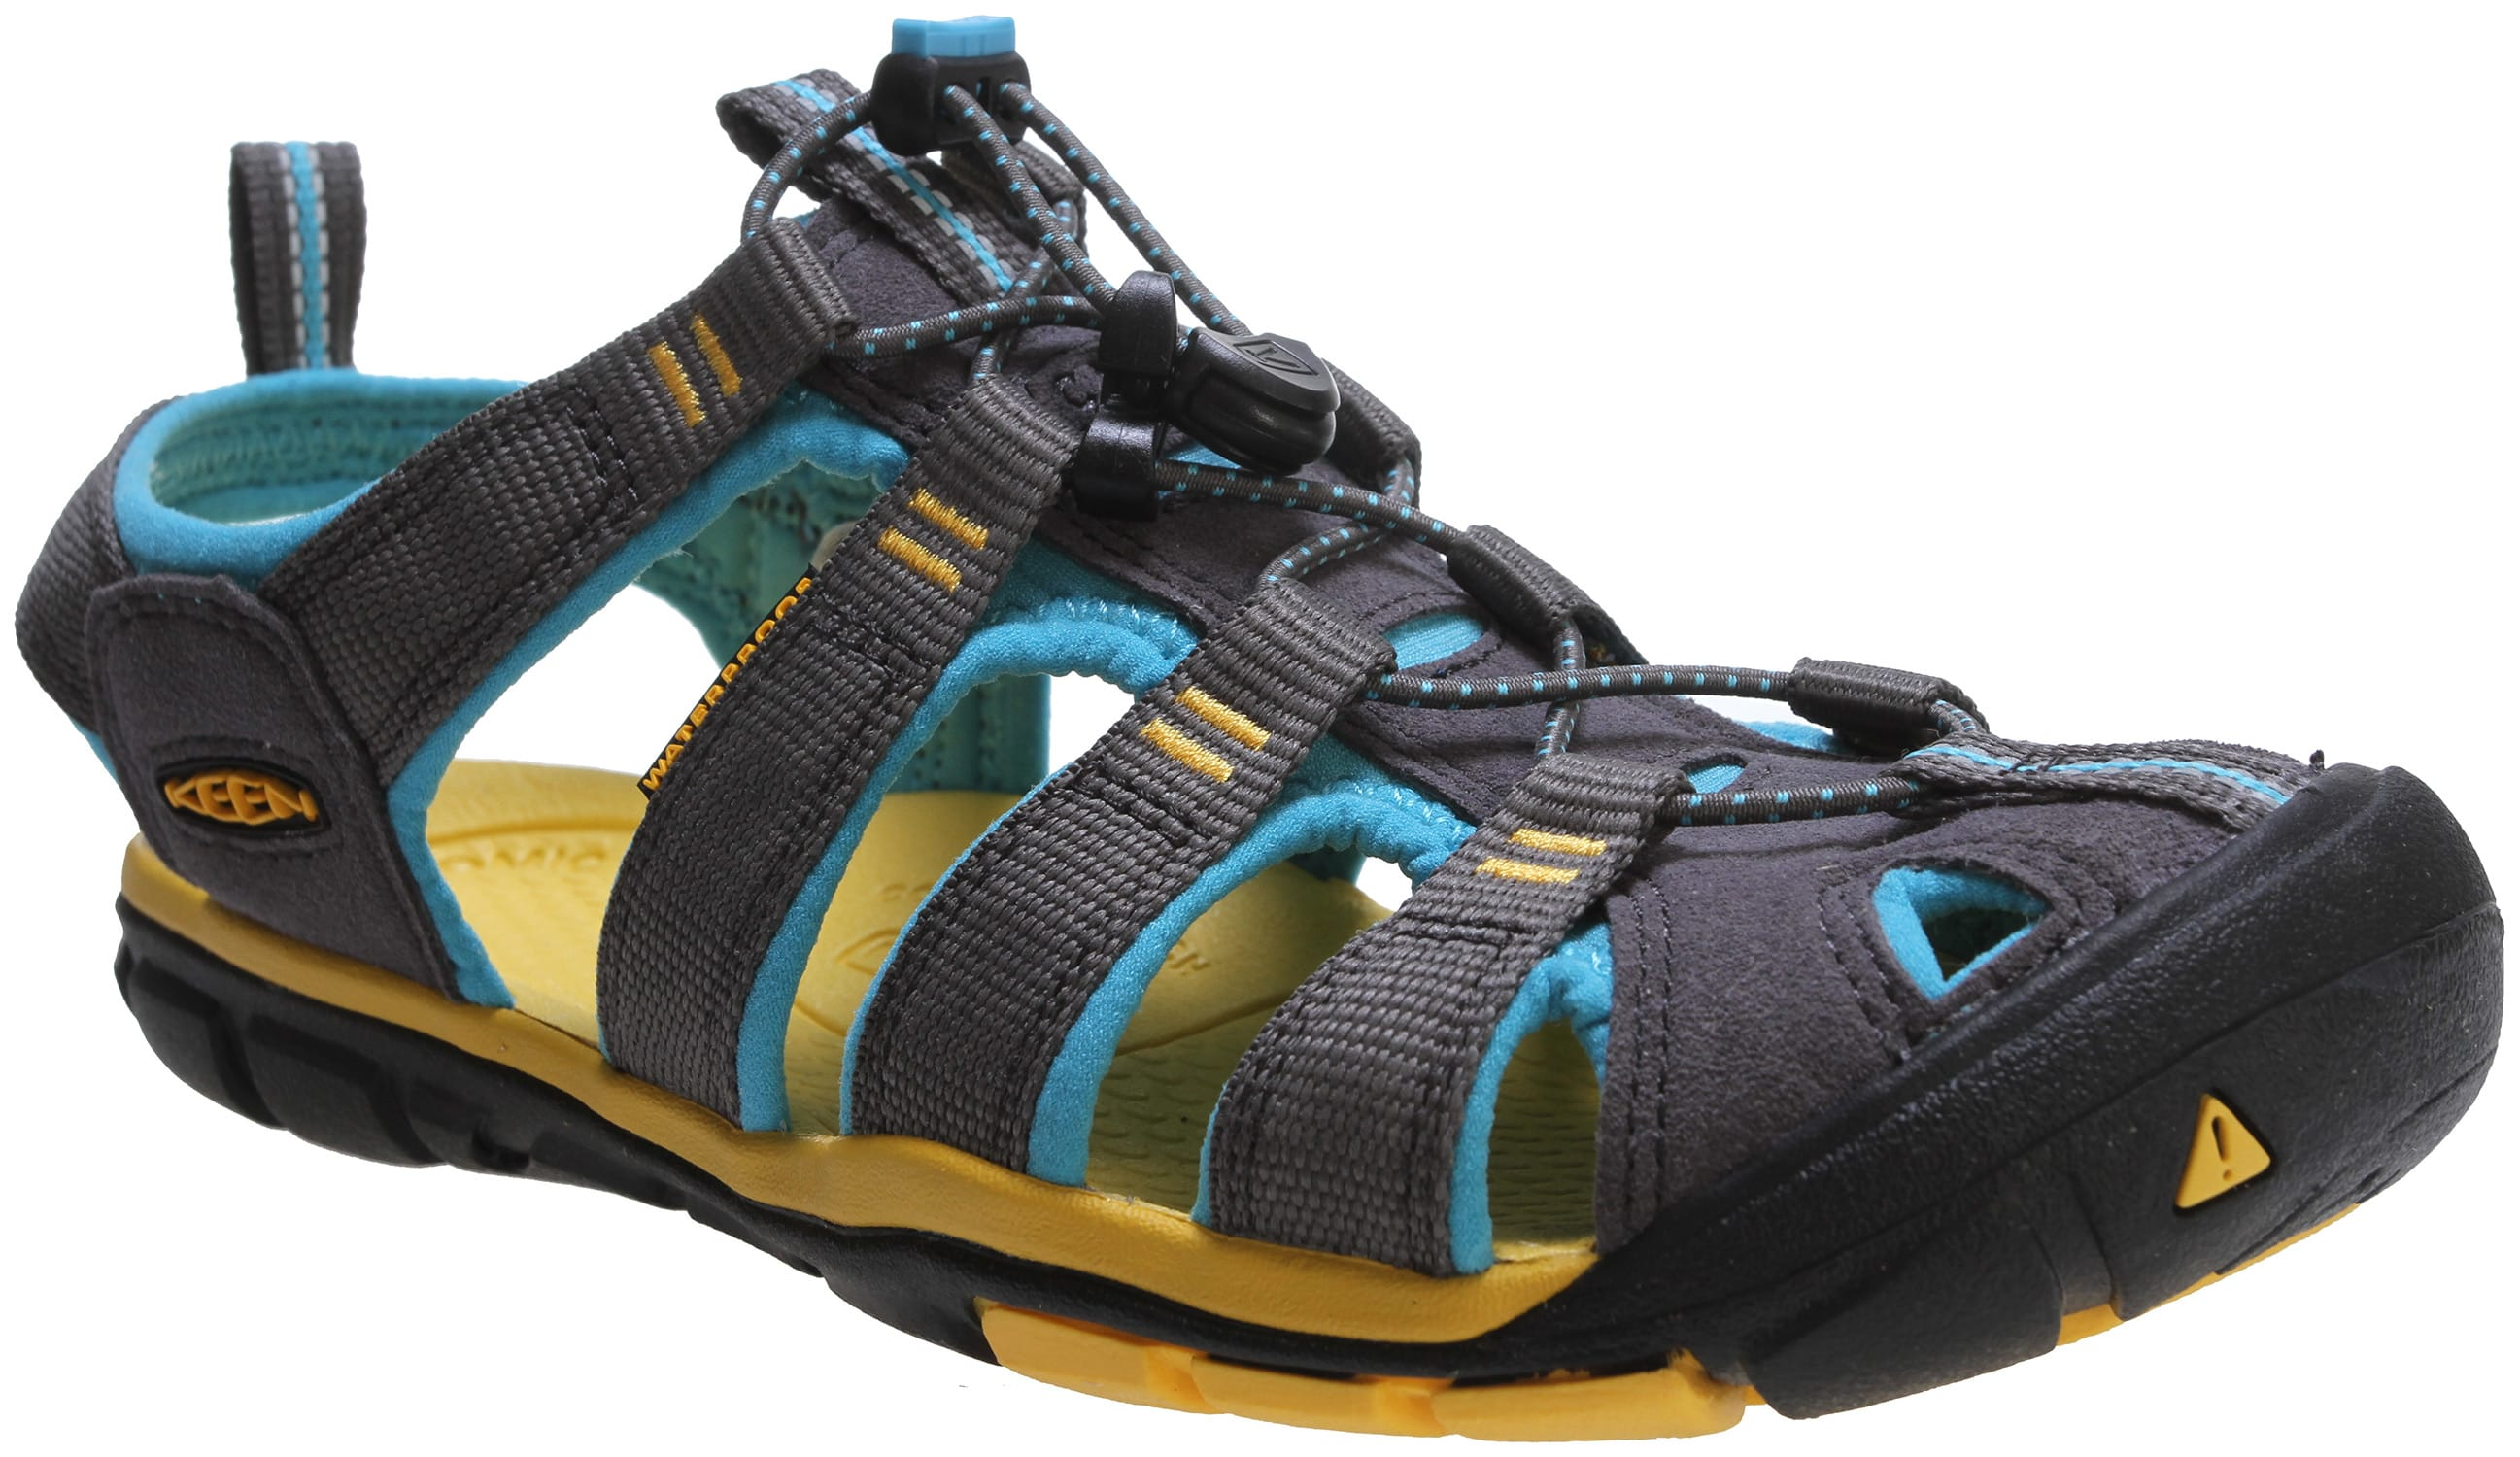 Keen Clearwater Cnx Sandals Womens